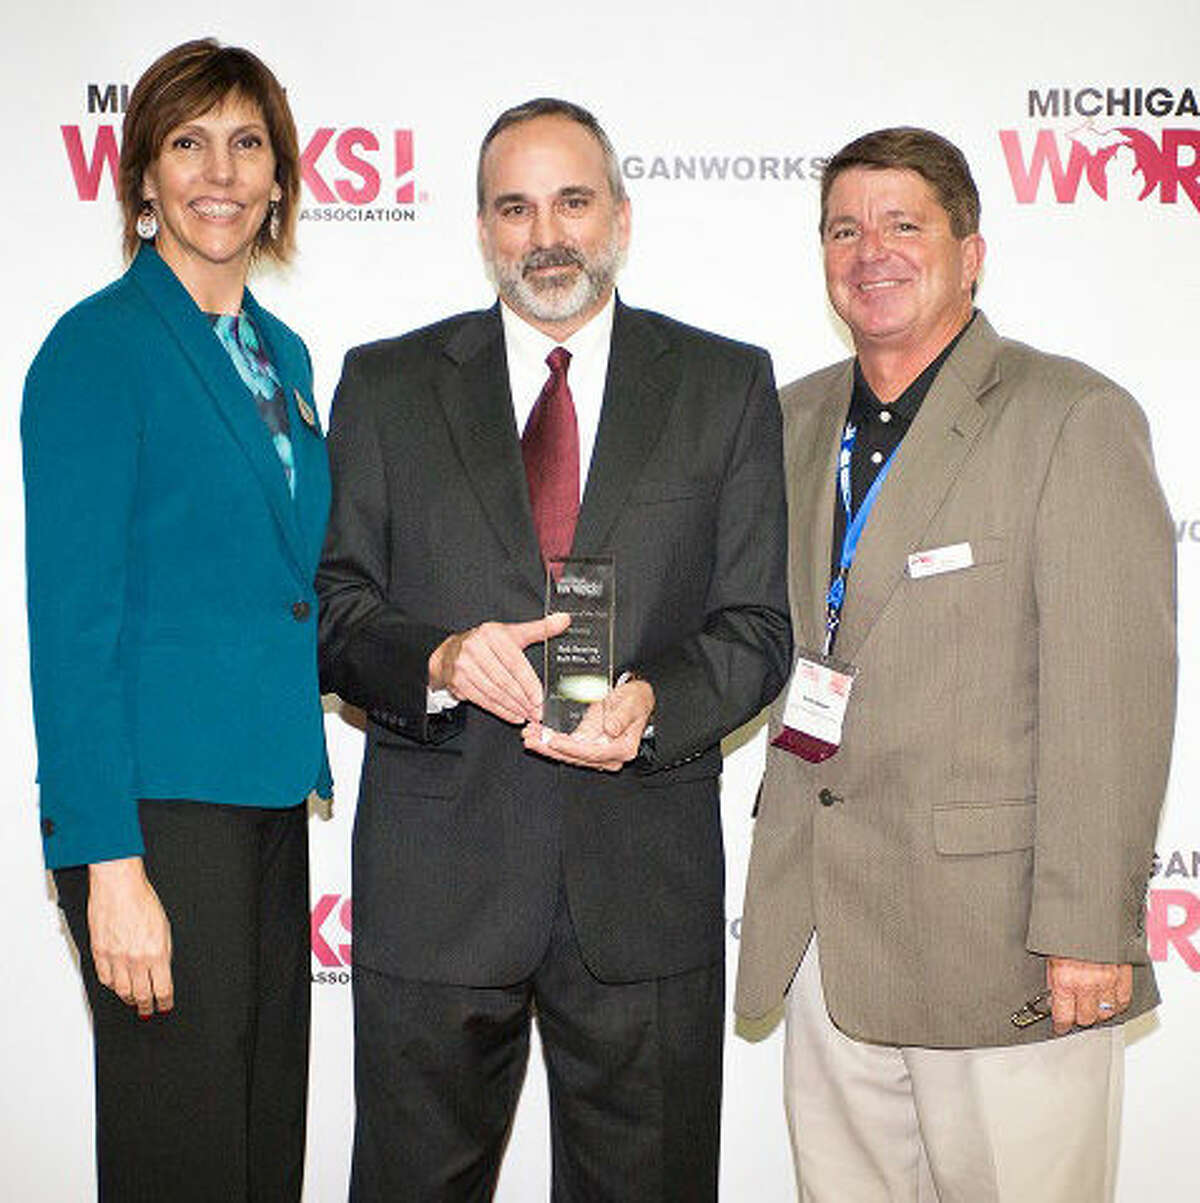 Pictured are Luann Dunsford, Michigan Works Volunteer of the Year Rob Neering and Mark Berdan.